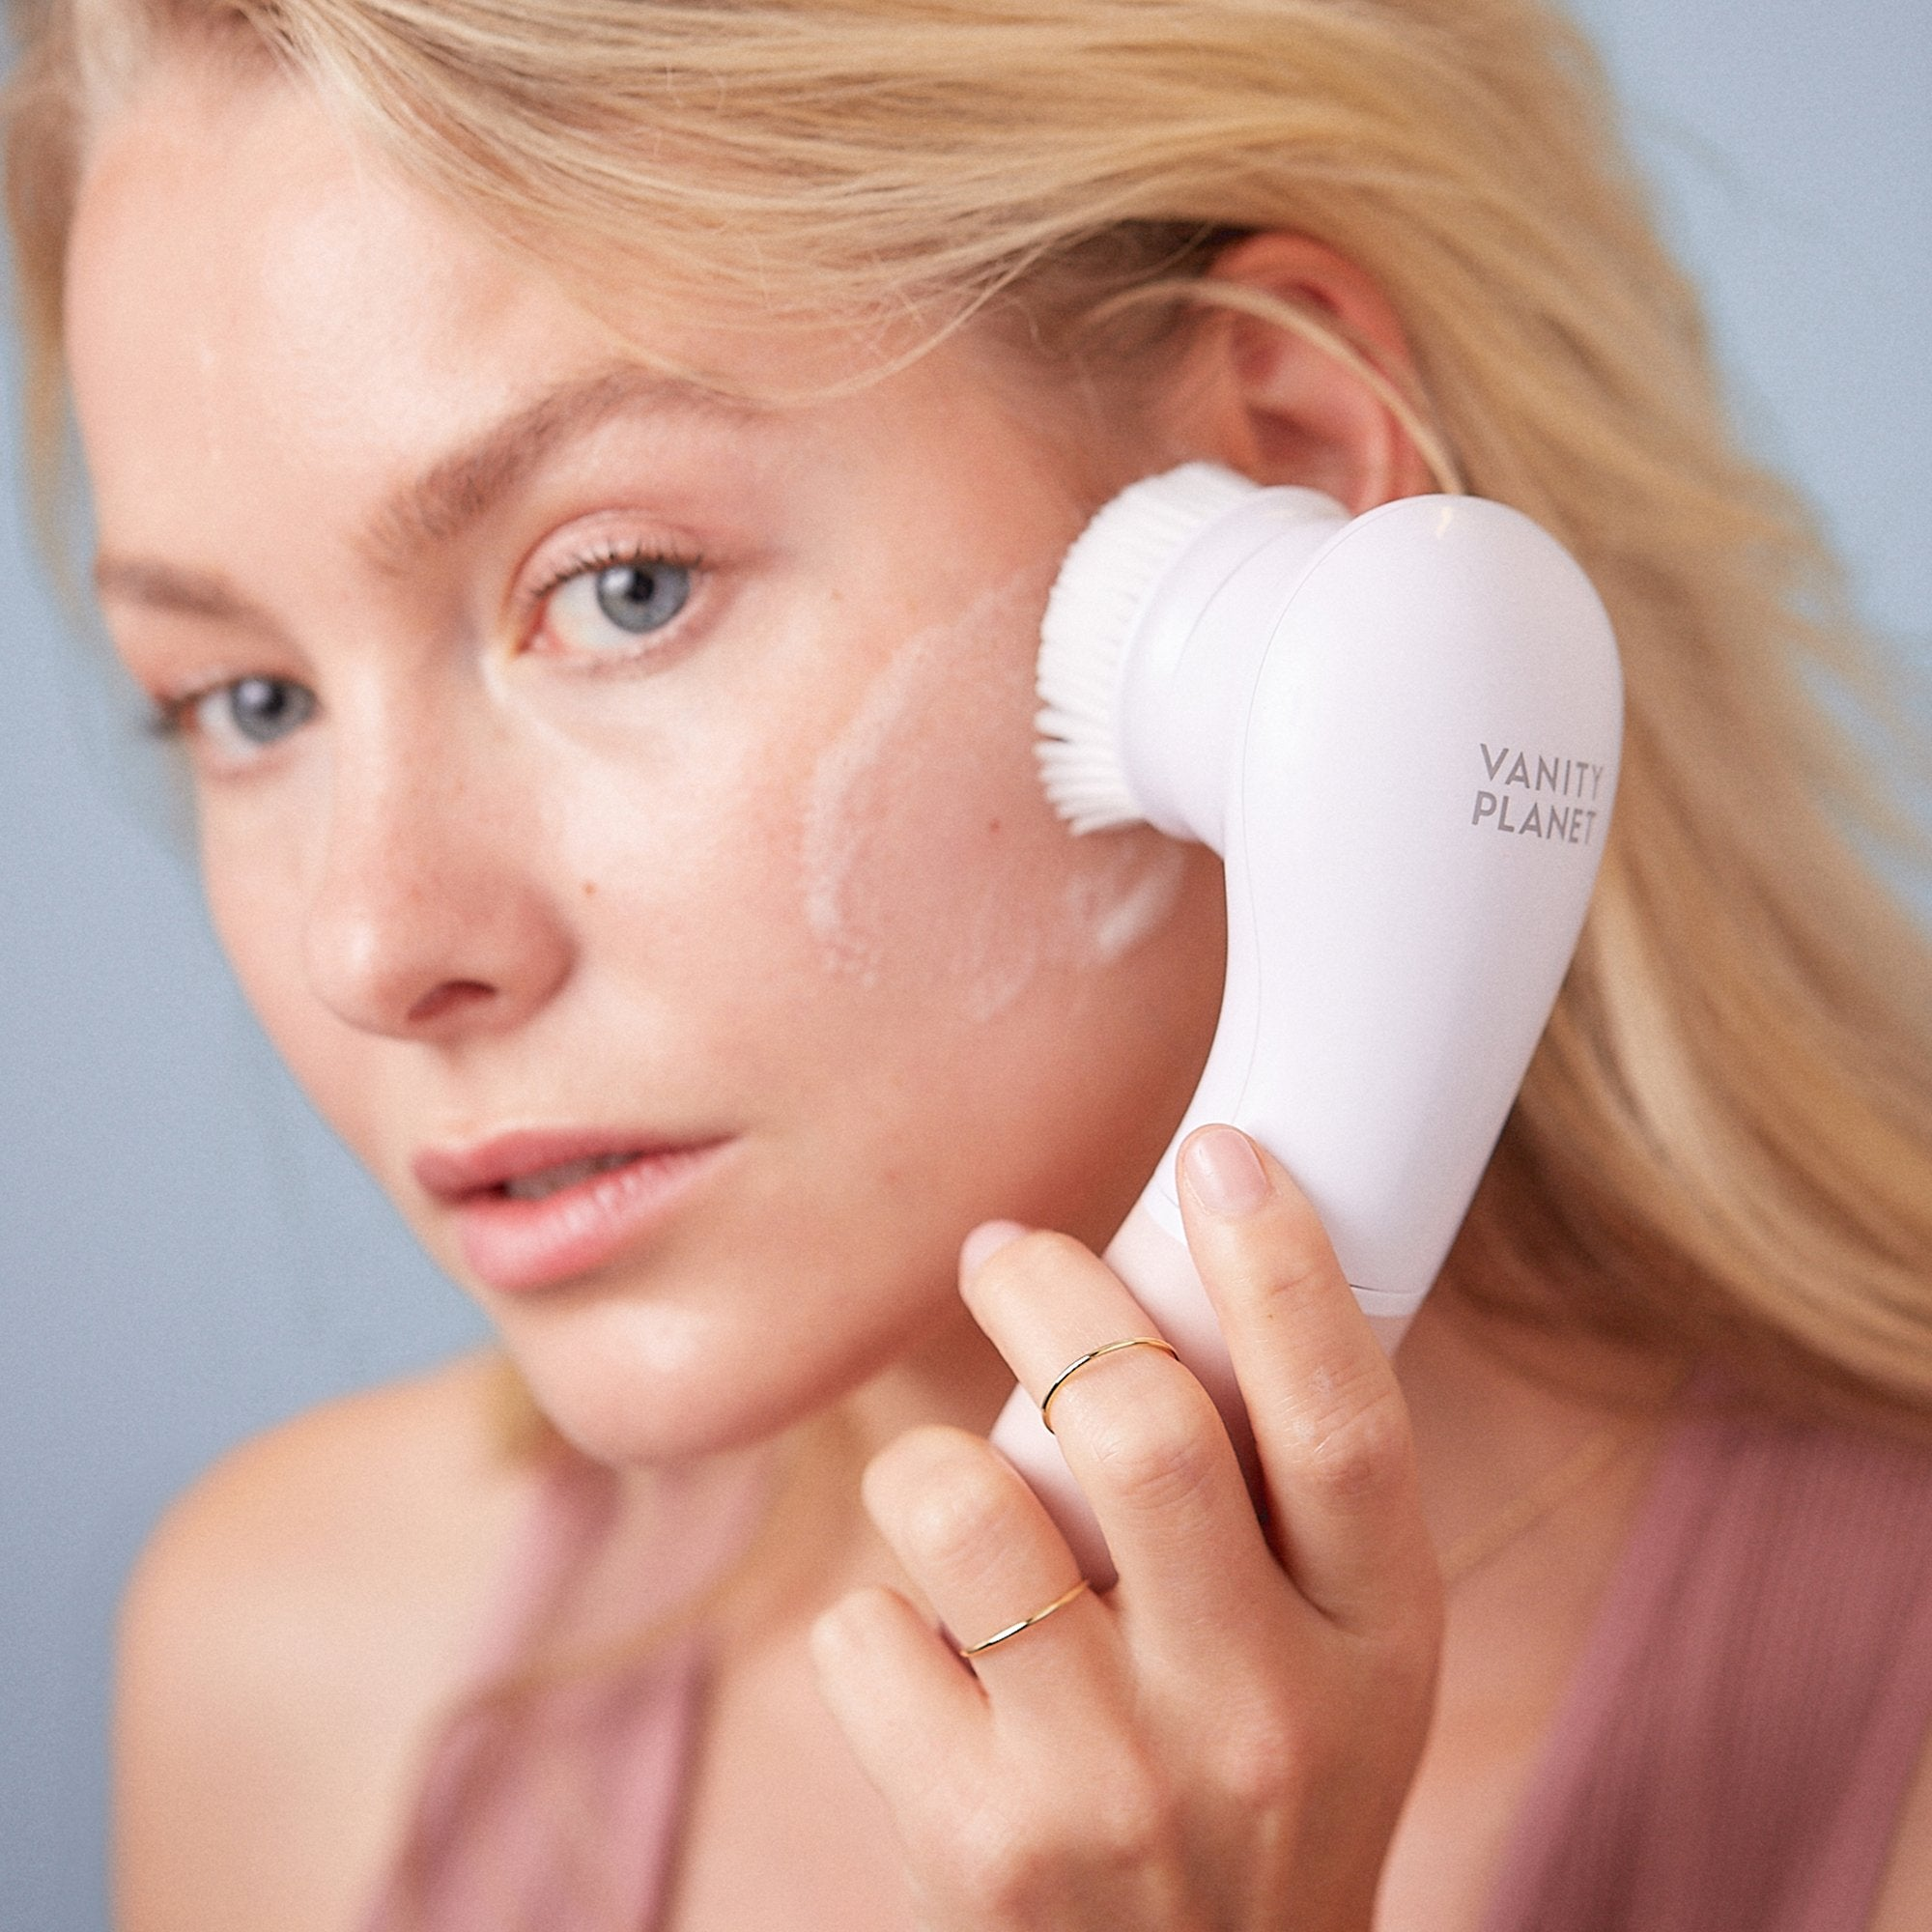 GlowSpin | Premium Facial Cleansing System*